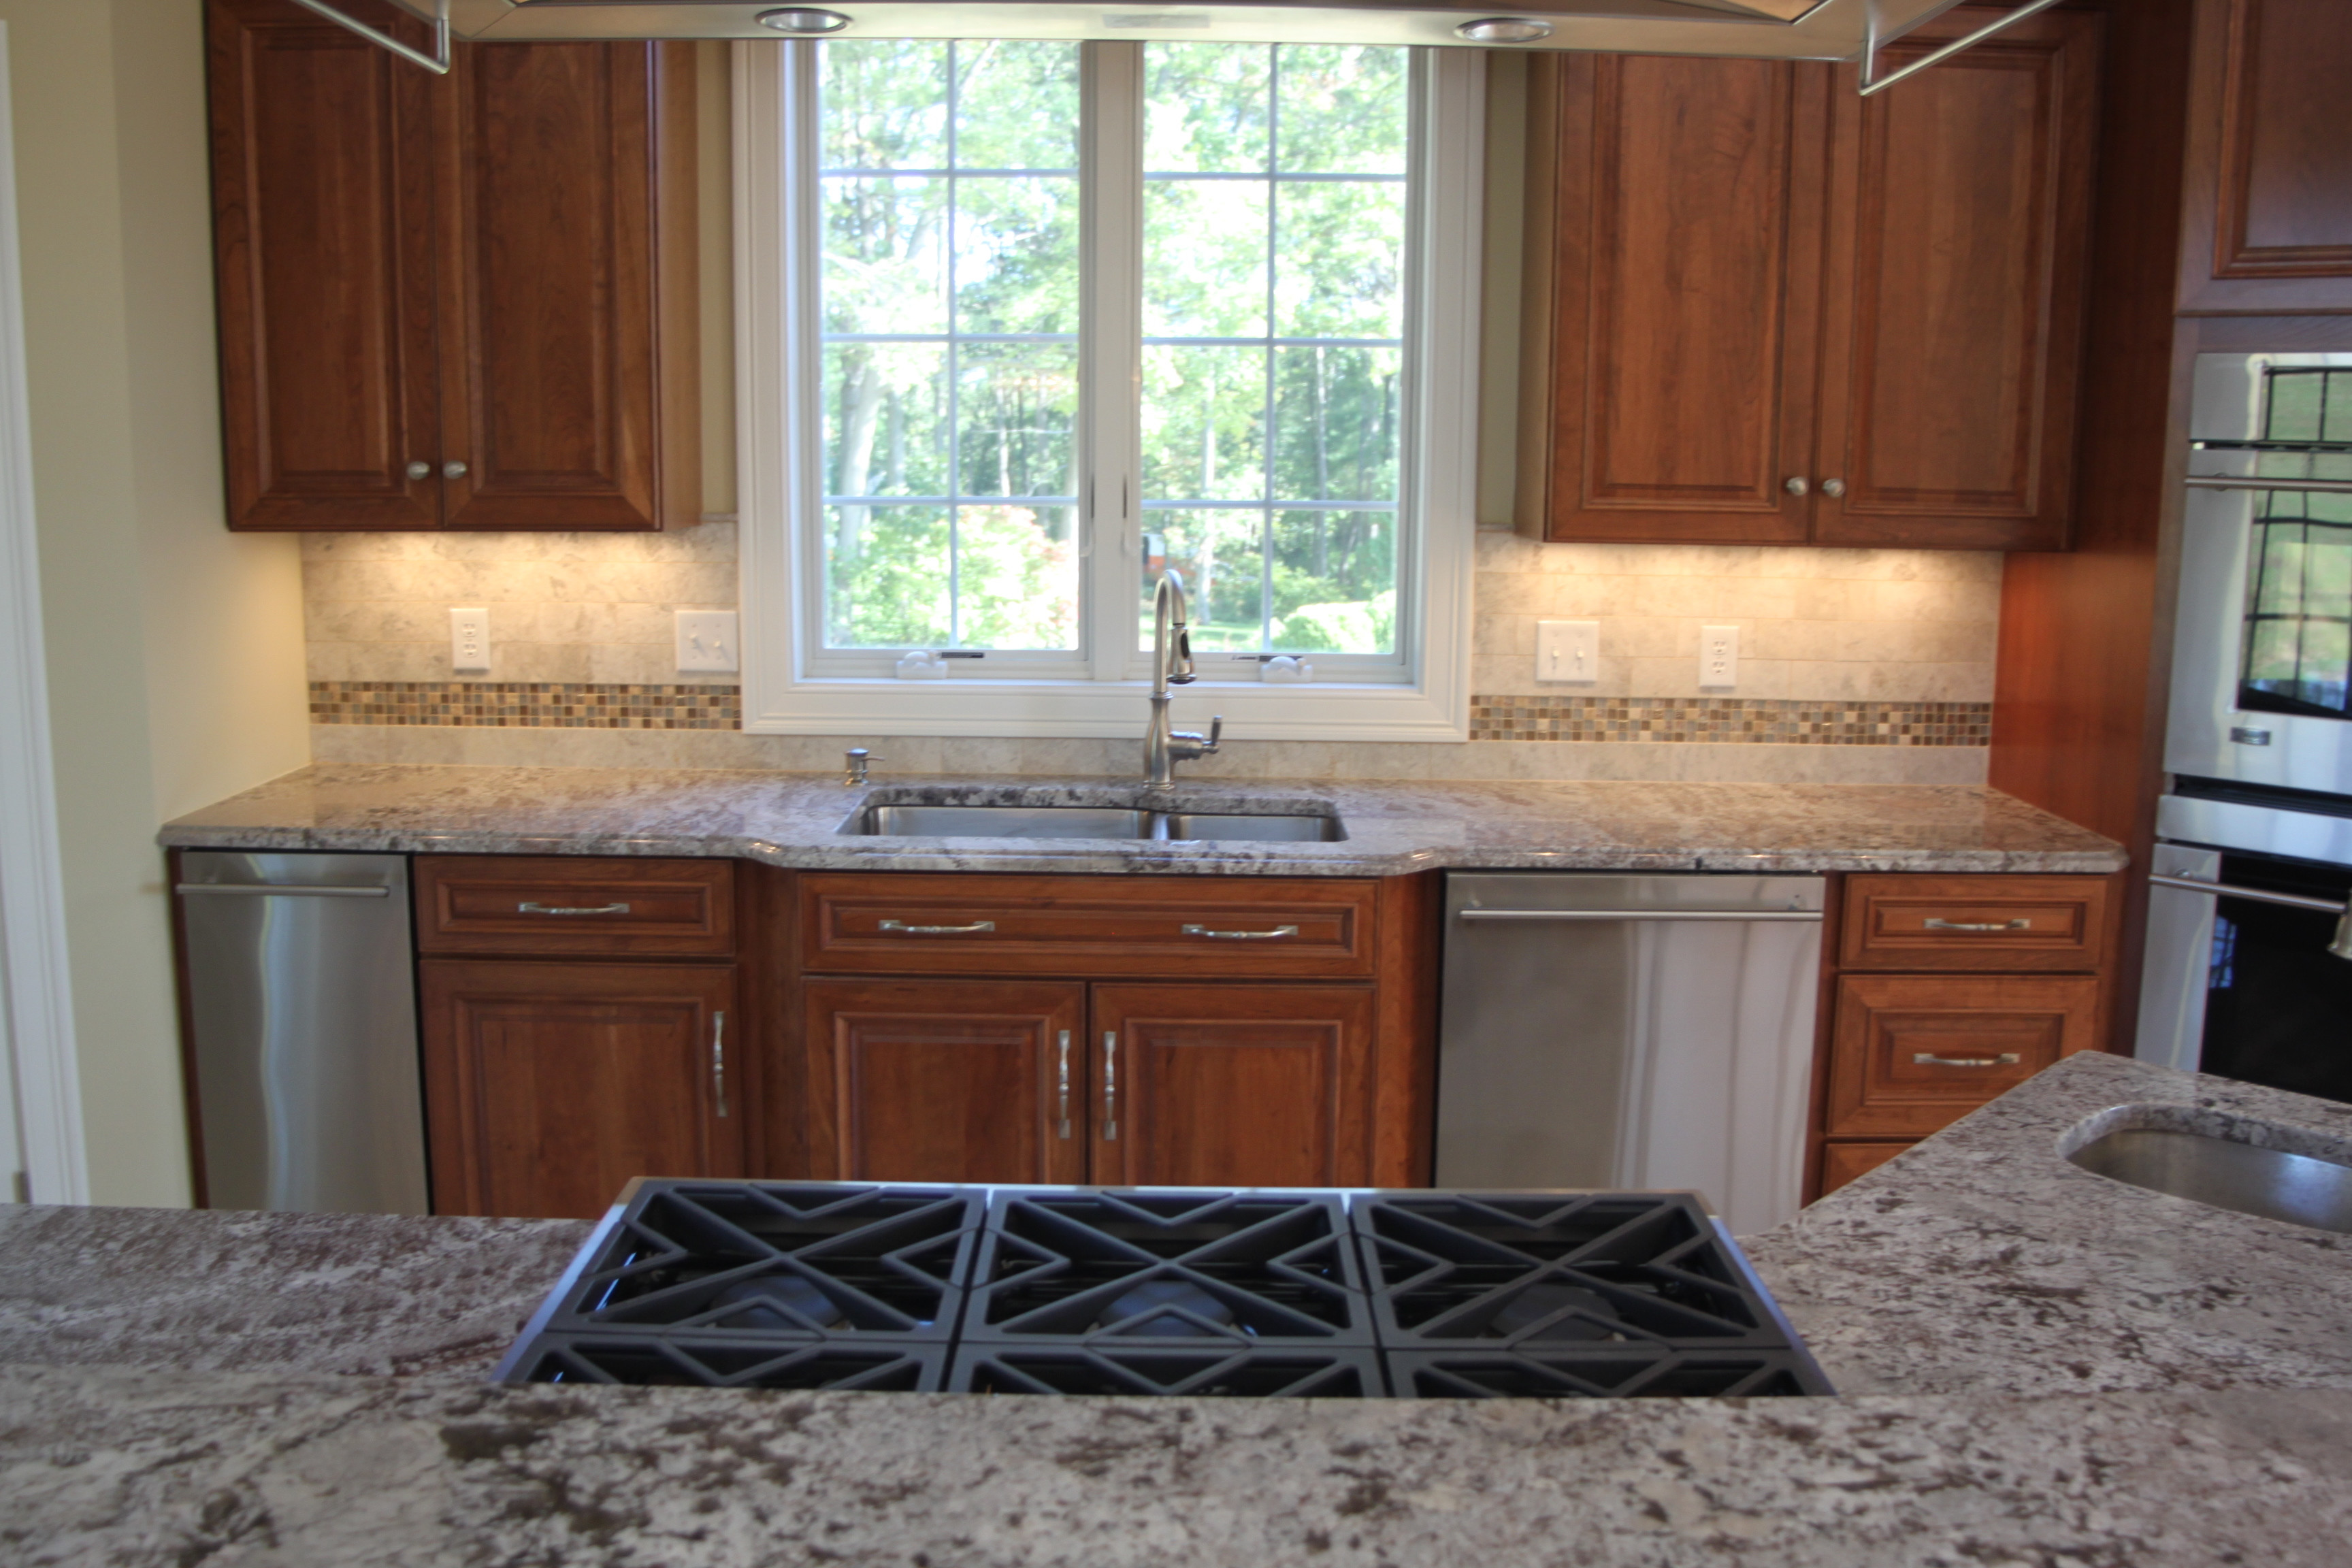 tile hardwood floor patterns of should your flooring match your kitchen cabinets or countertops in should your flooring match your kitchen cabinets or countertops